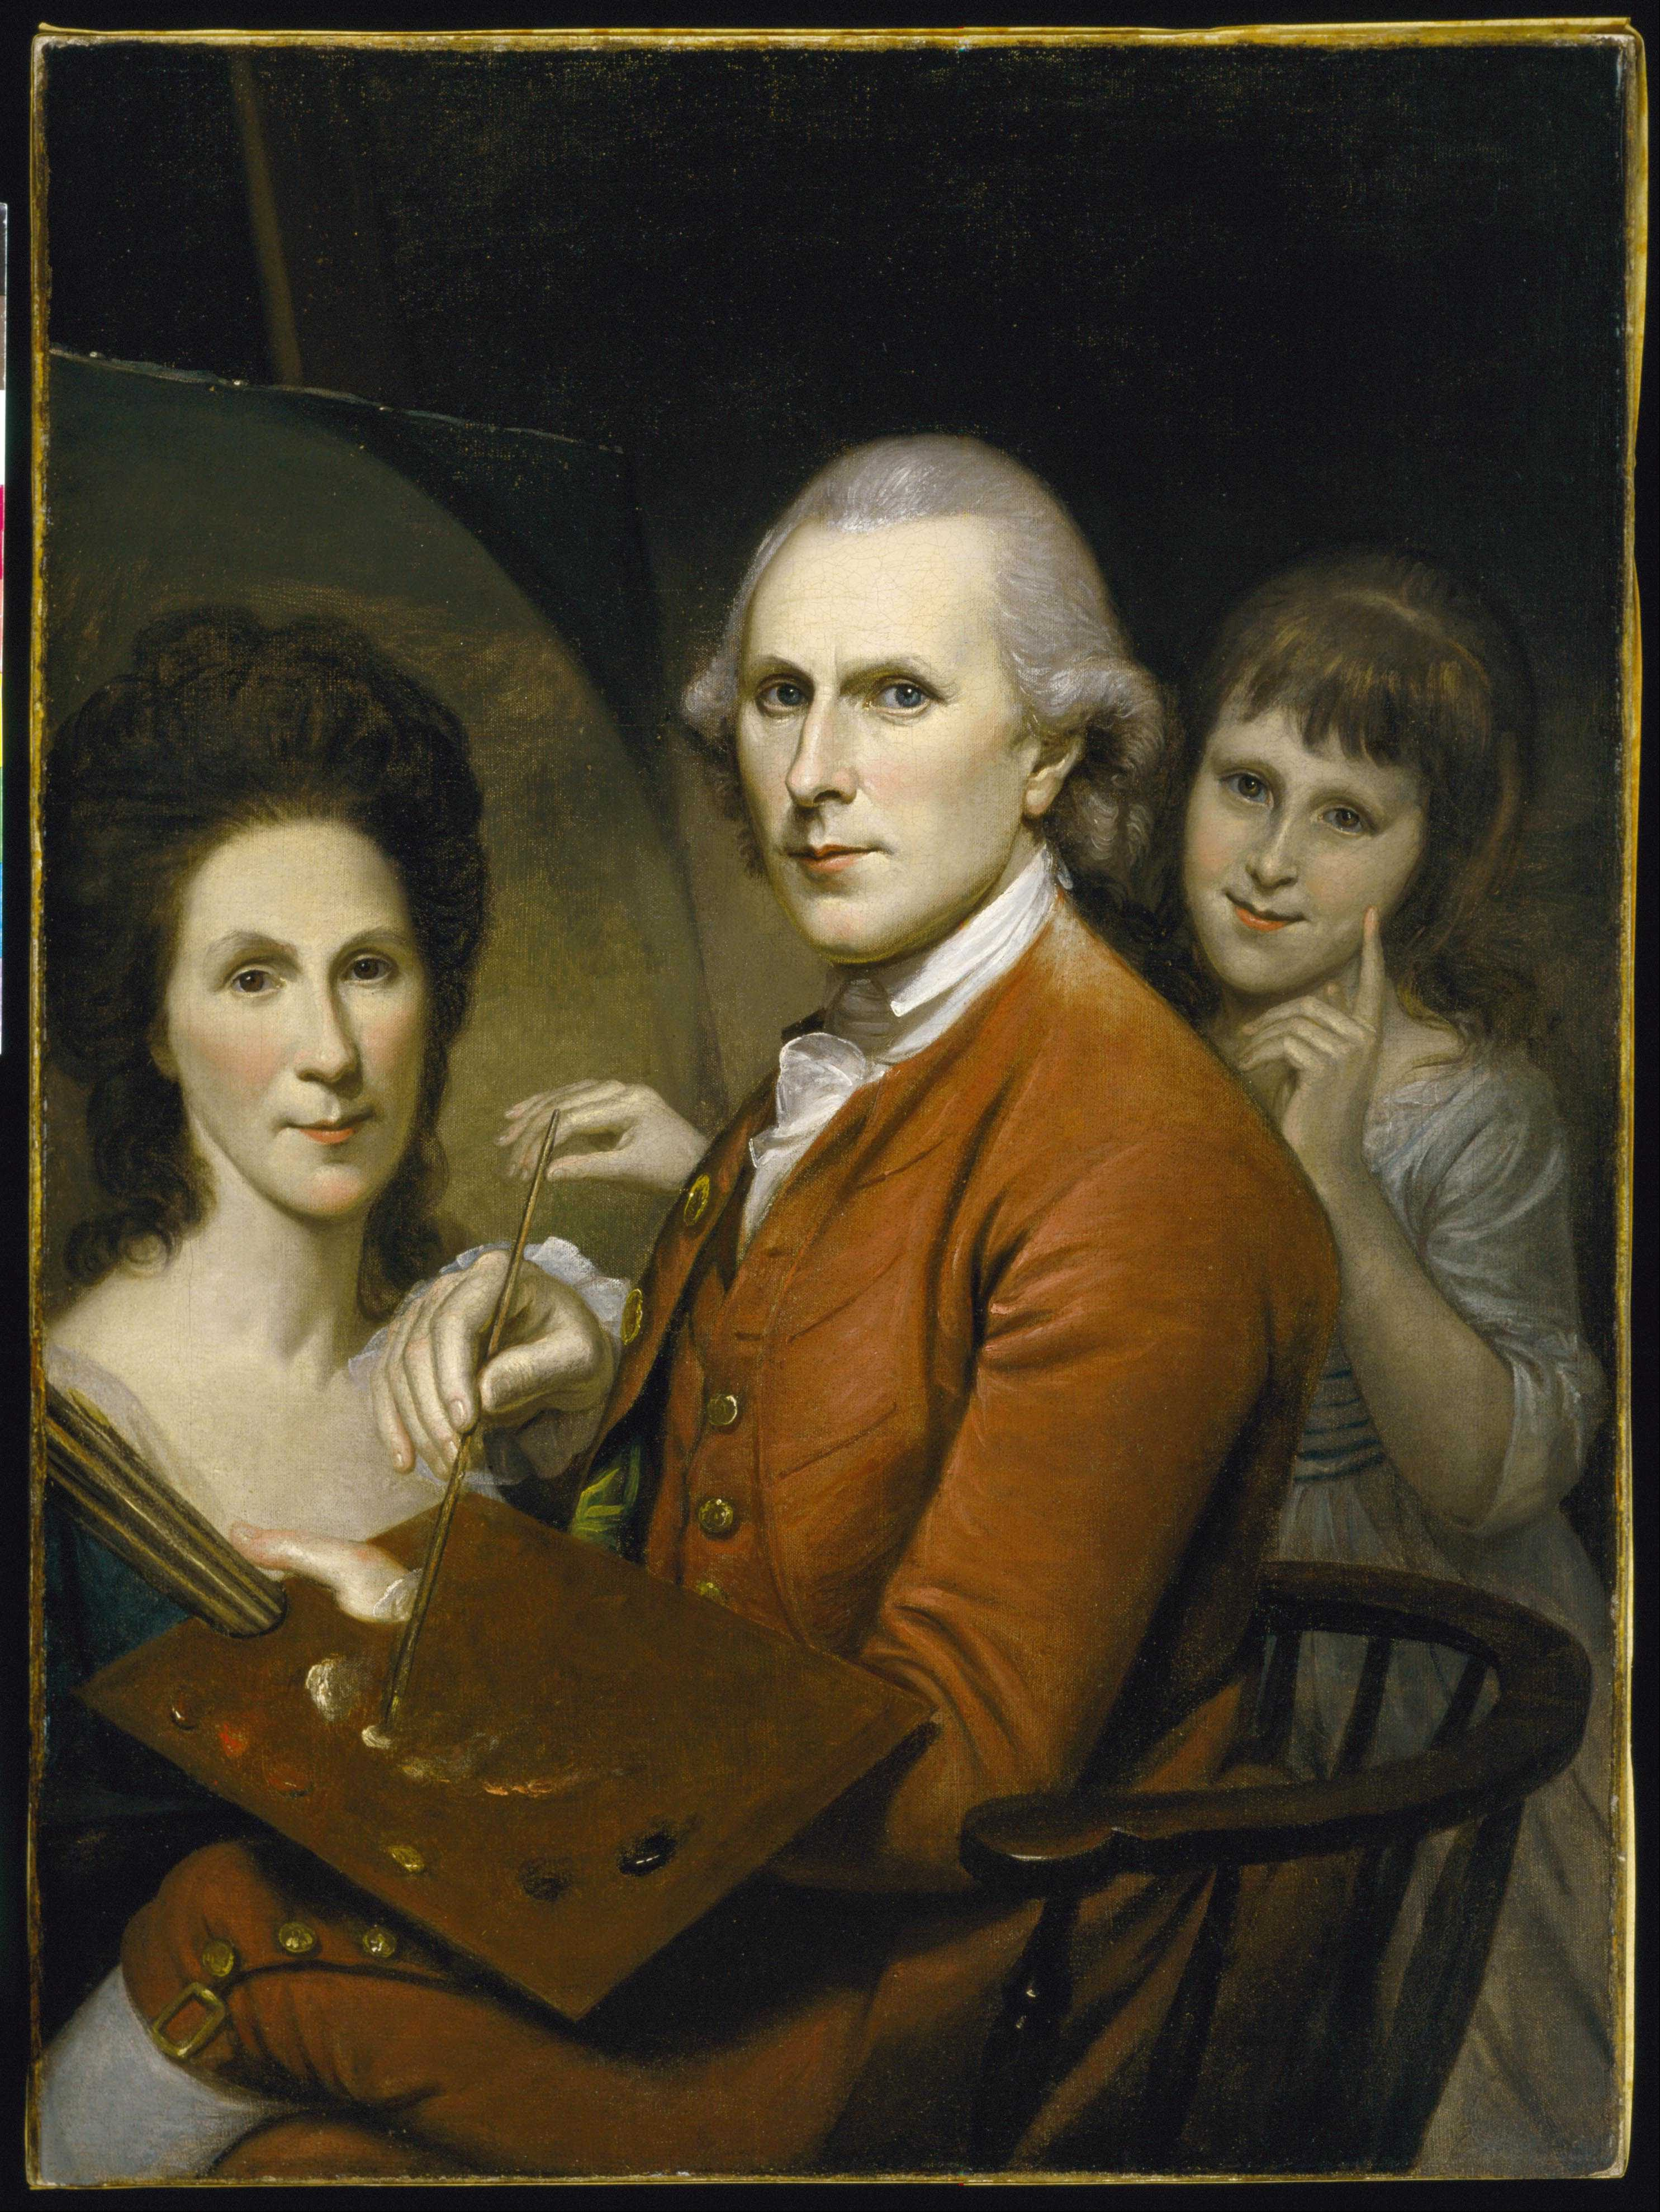 Charles Willson Peale, self-portrait, {{circa}} 1782–85 with portraits of his wife Rachel and his daughter Angelica